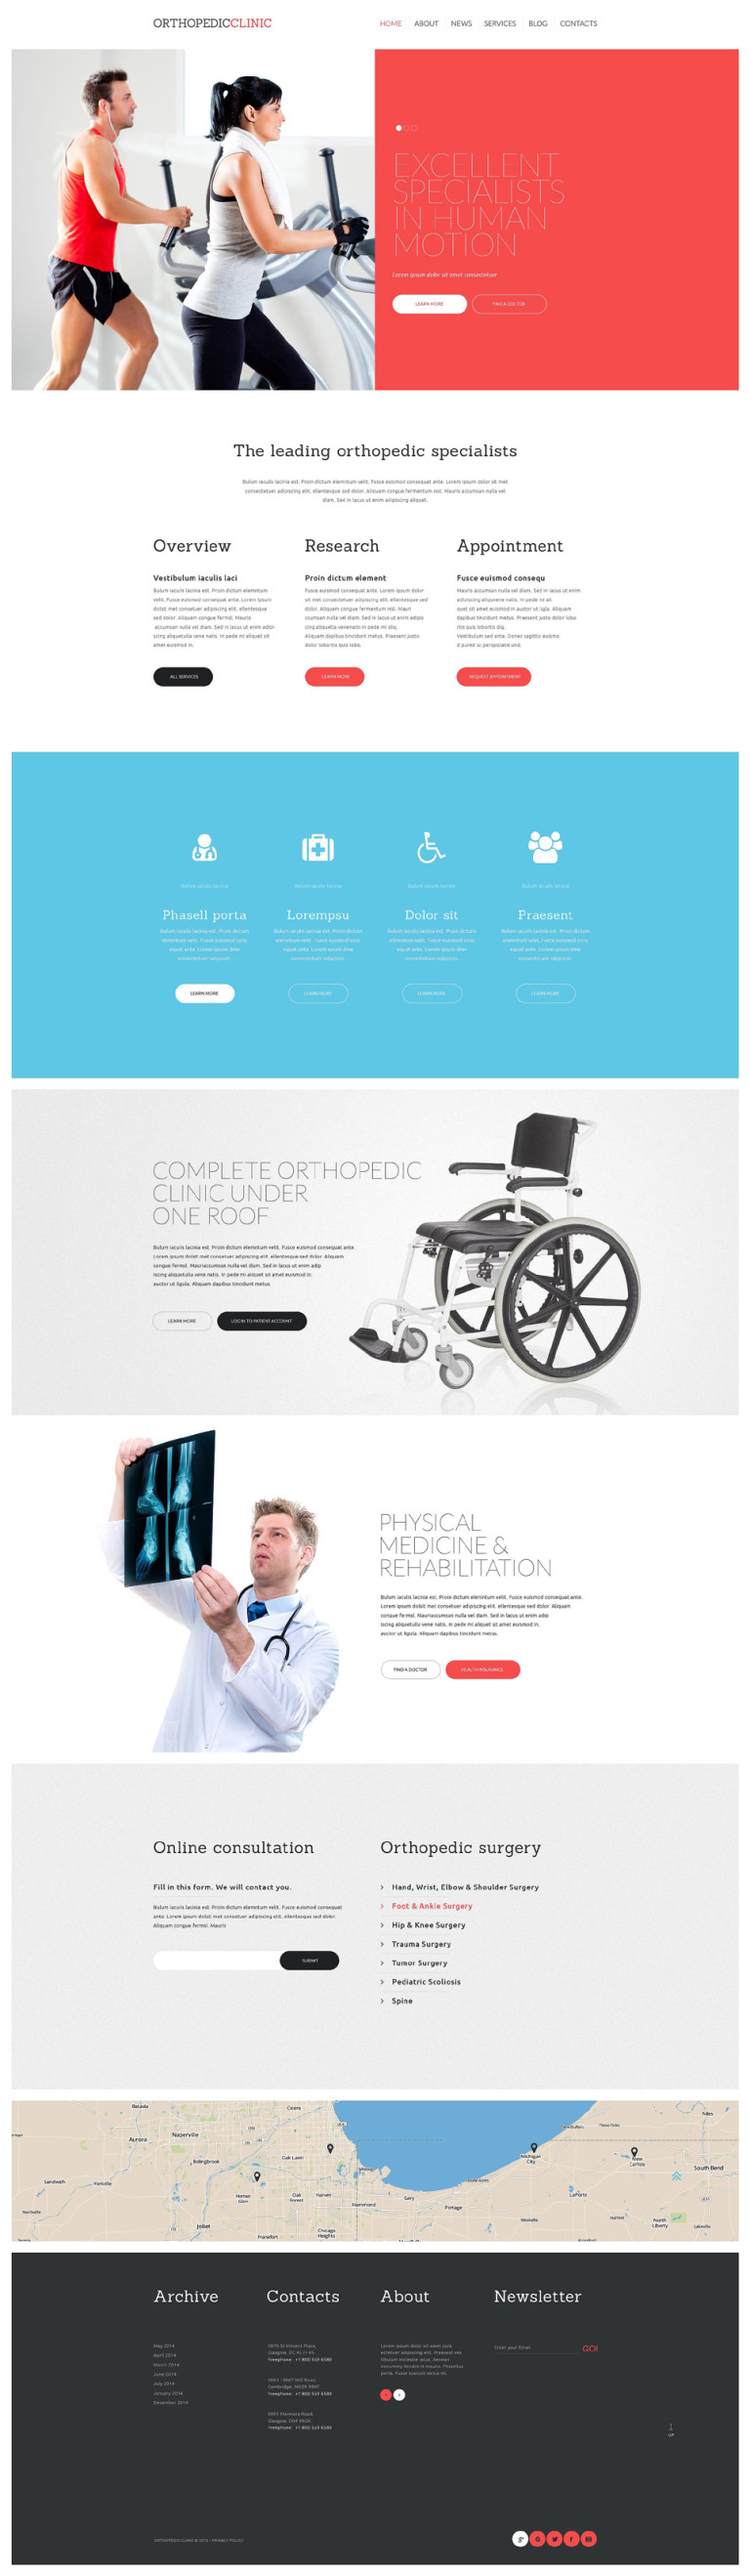 Orthopaedic Clinic Website Template New Screenshots BIG